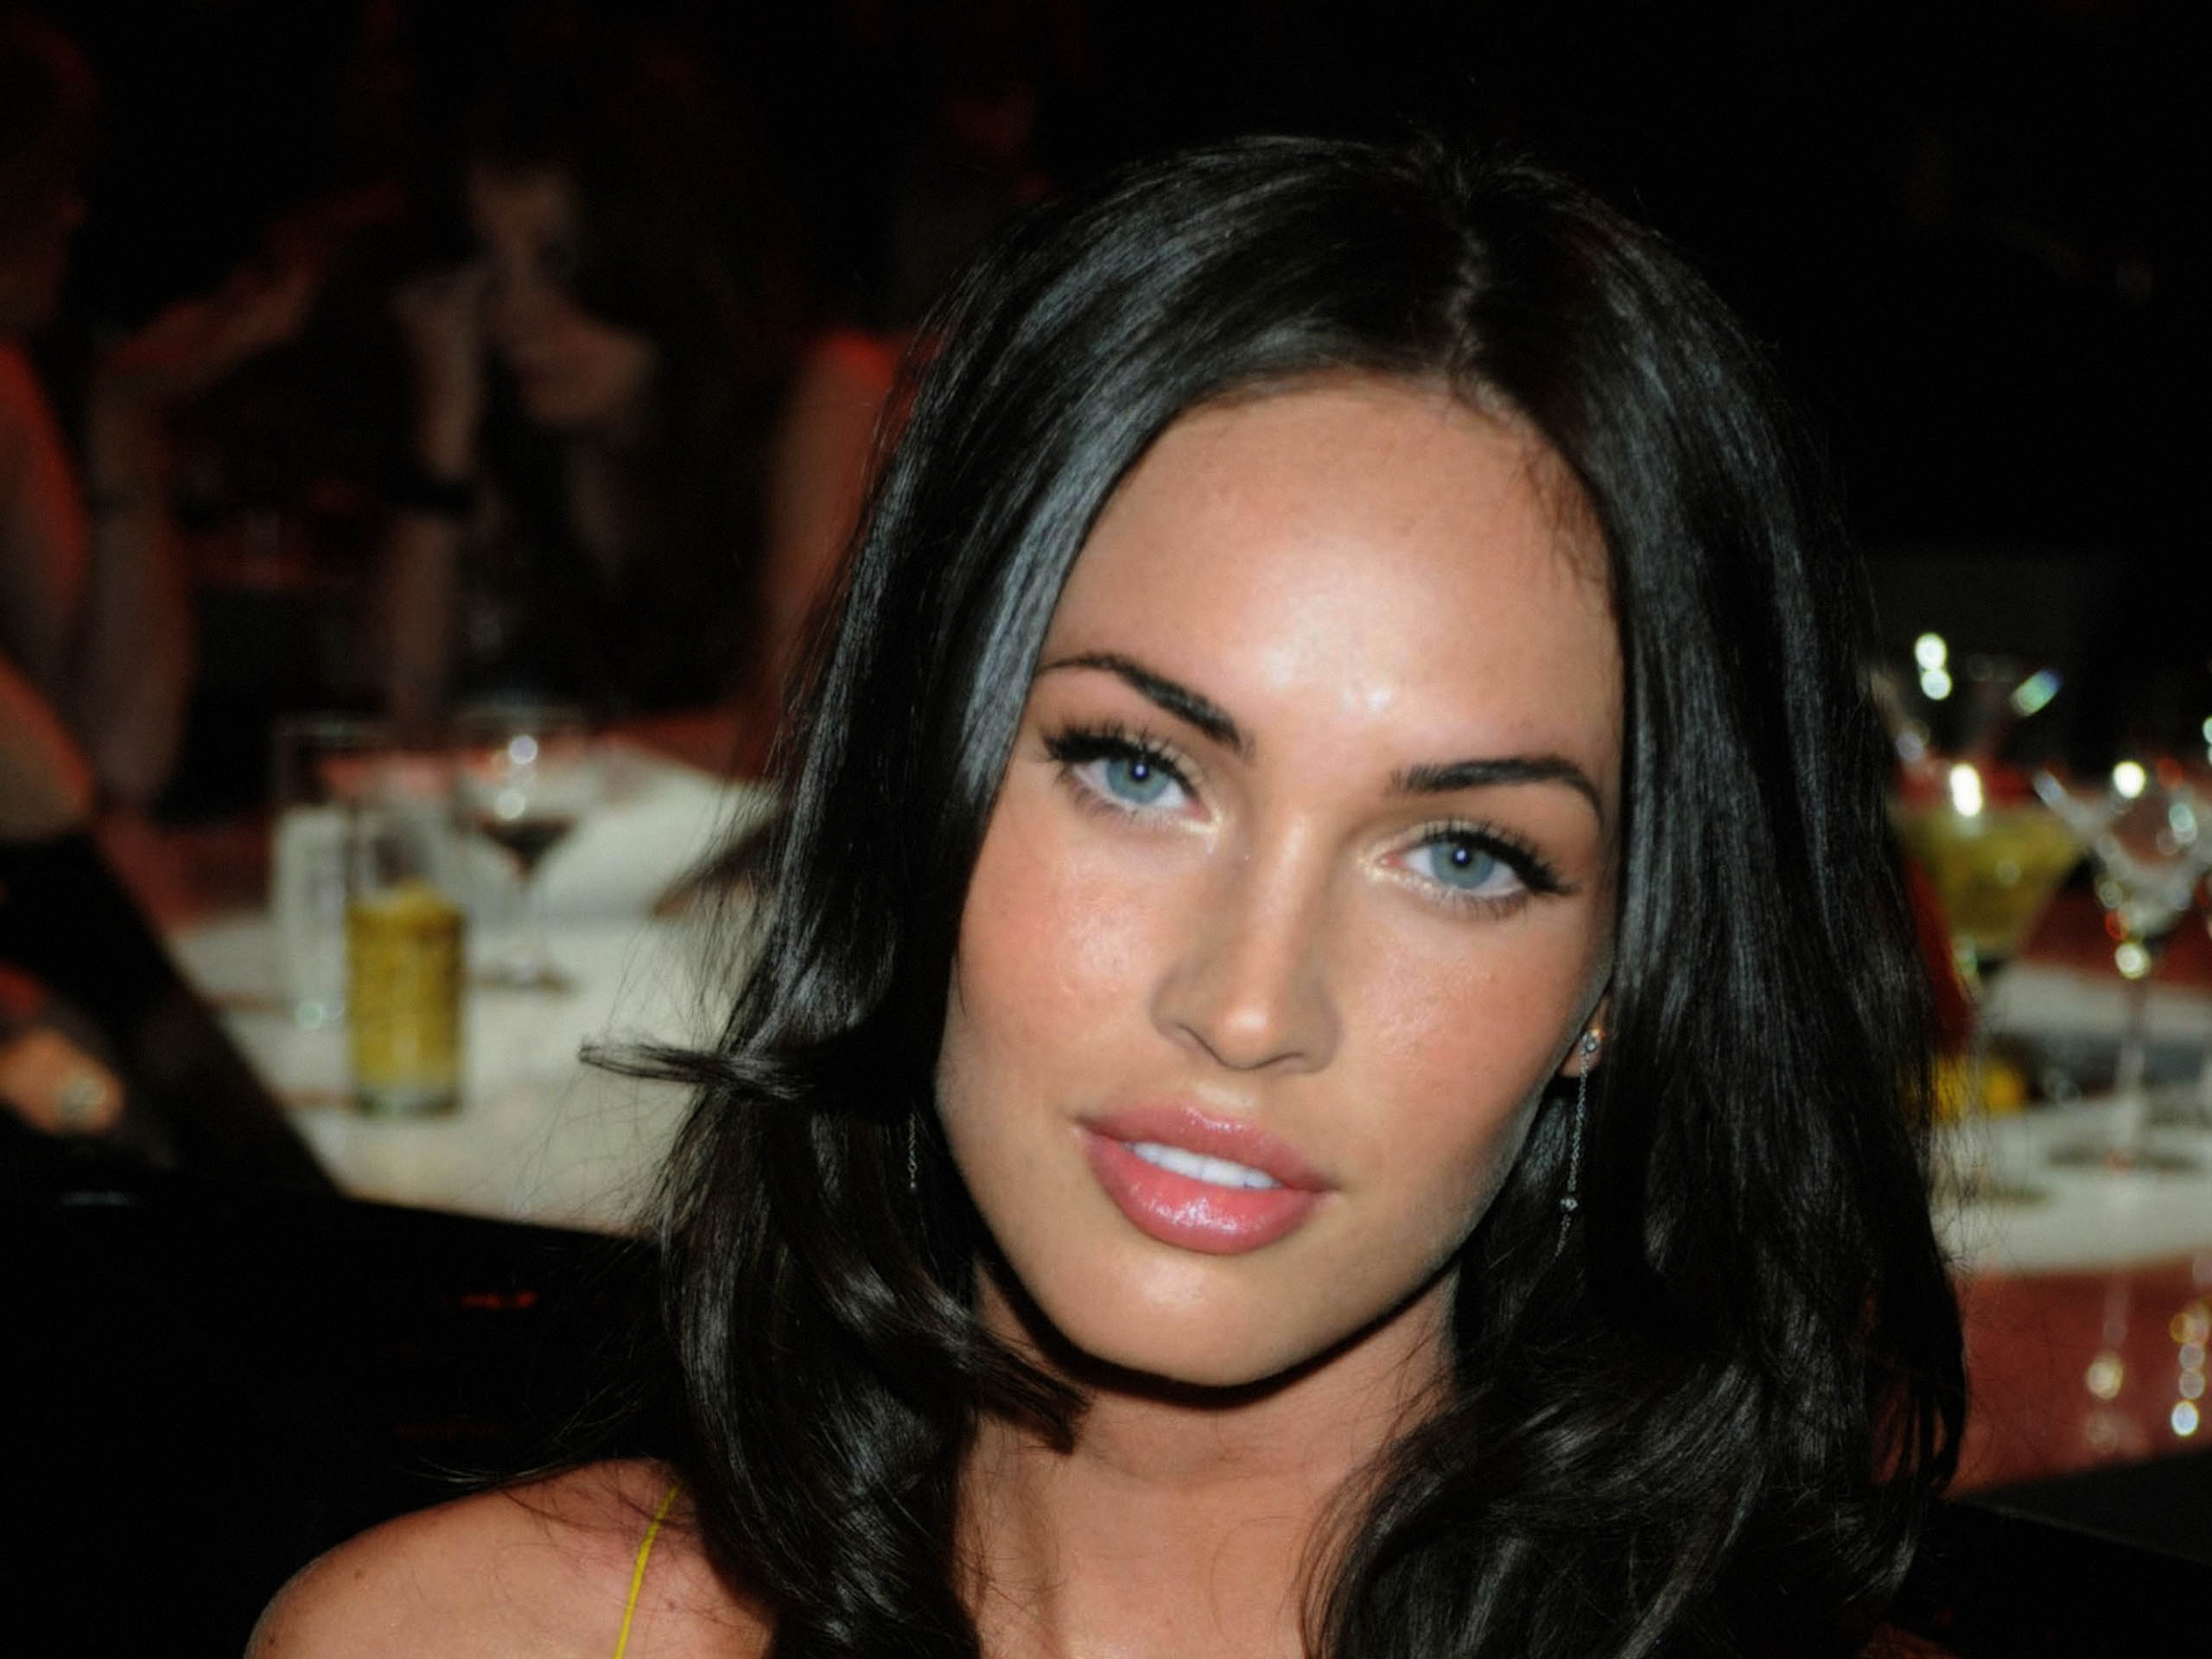 Celebrity Megan Fox HD Wallpapers for Desktop | 2015 Styles | Pinterest